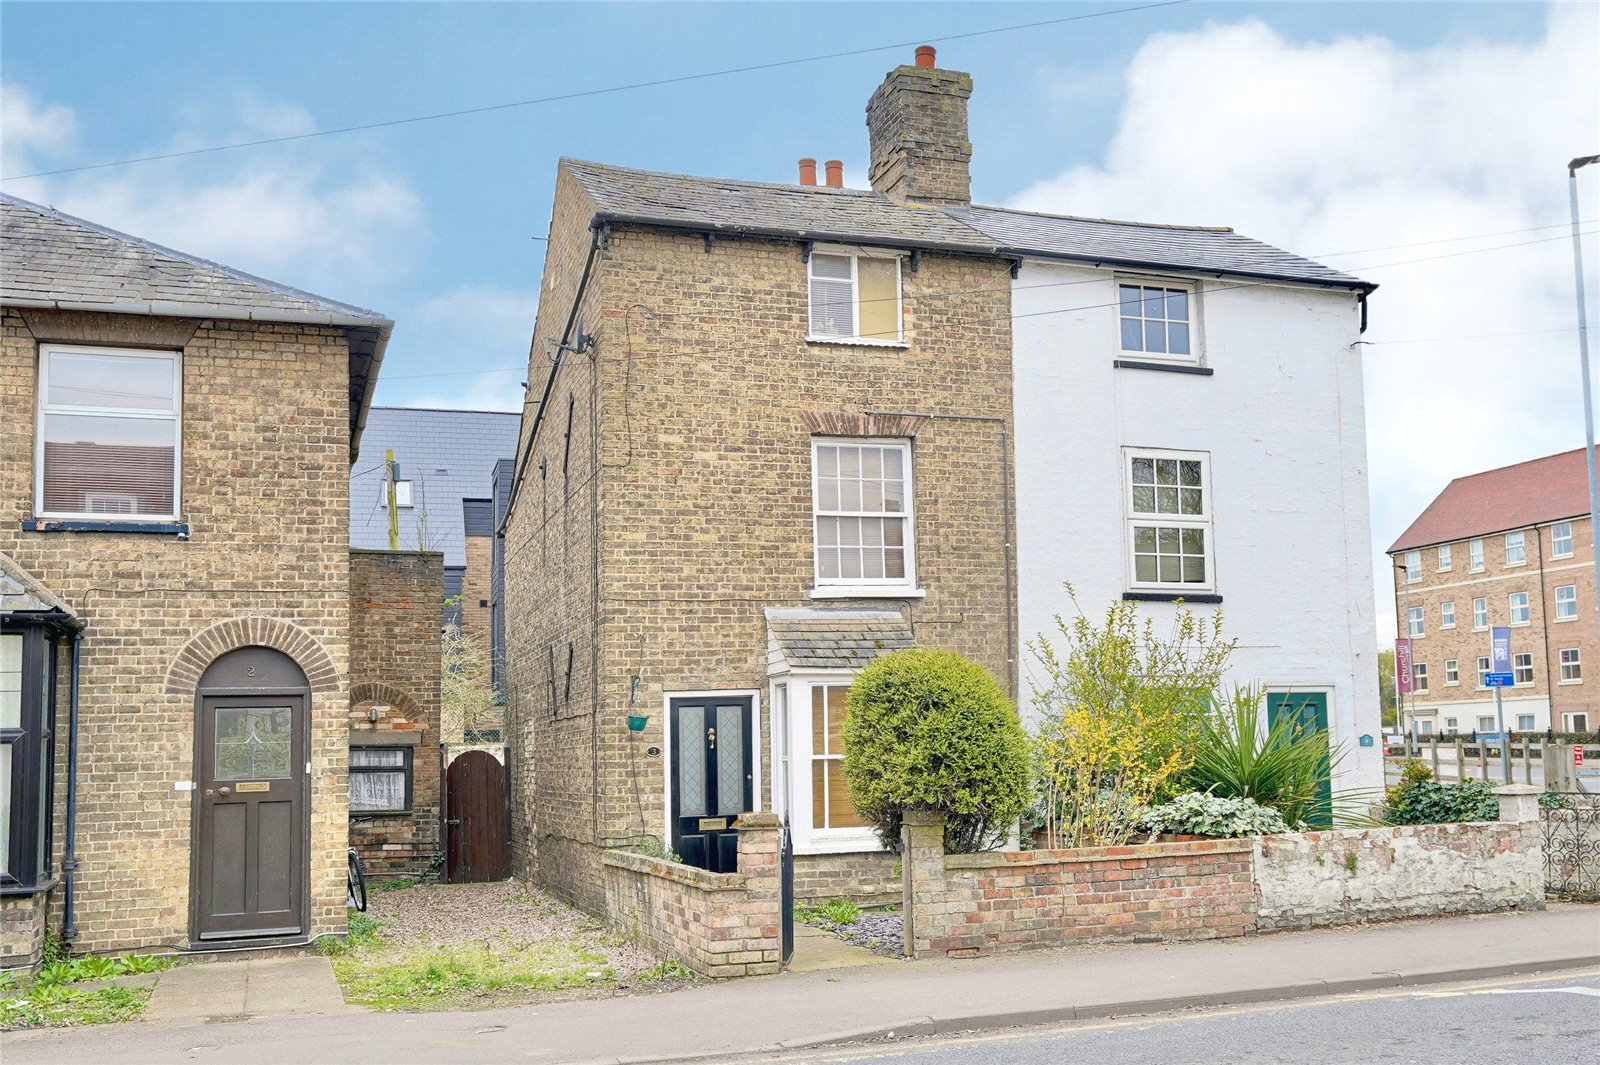 3 bed house for sale in Huntingdon, PE29 3EX  - Property Image 1